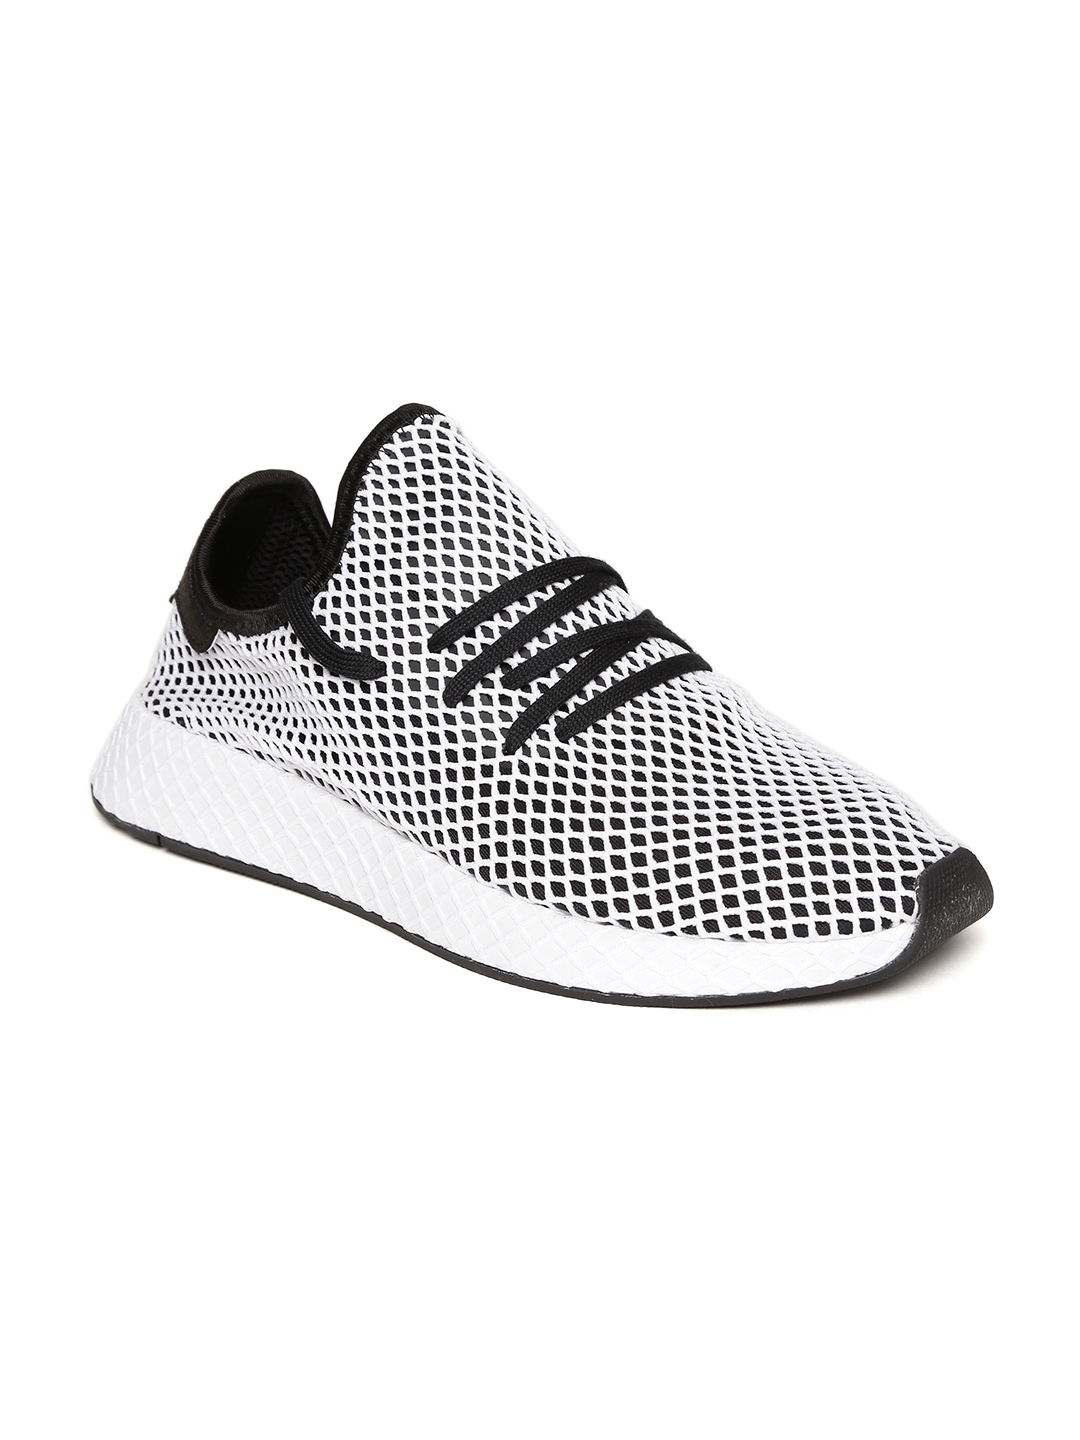 abbe9a2e9167b5 ADIDAS Originals Men White   Black Deerupt Runner Patterned Sneakers